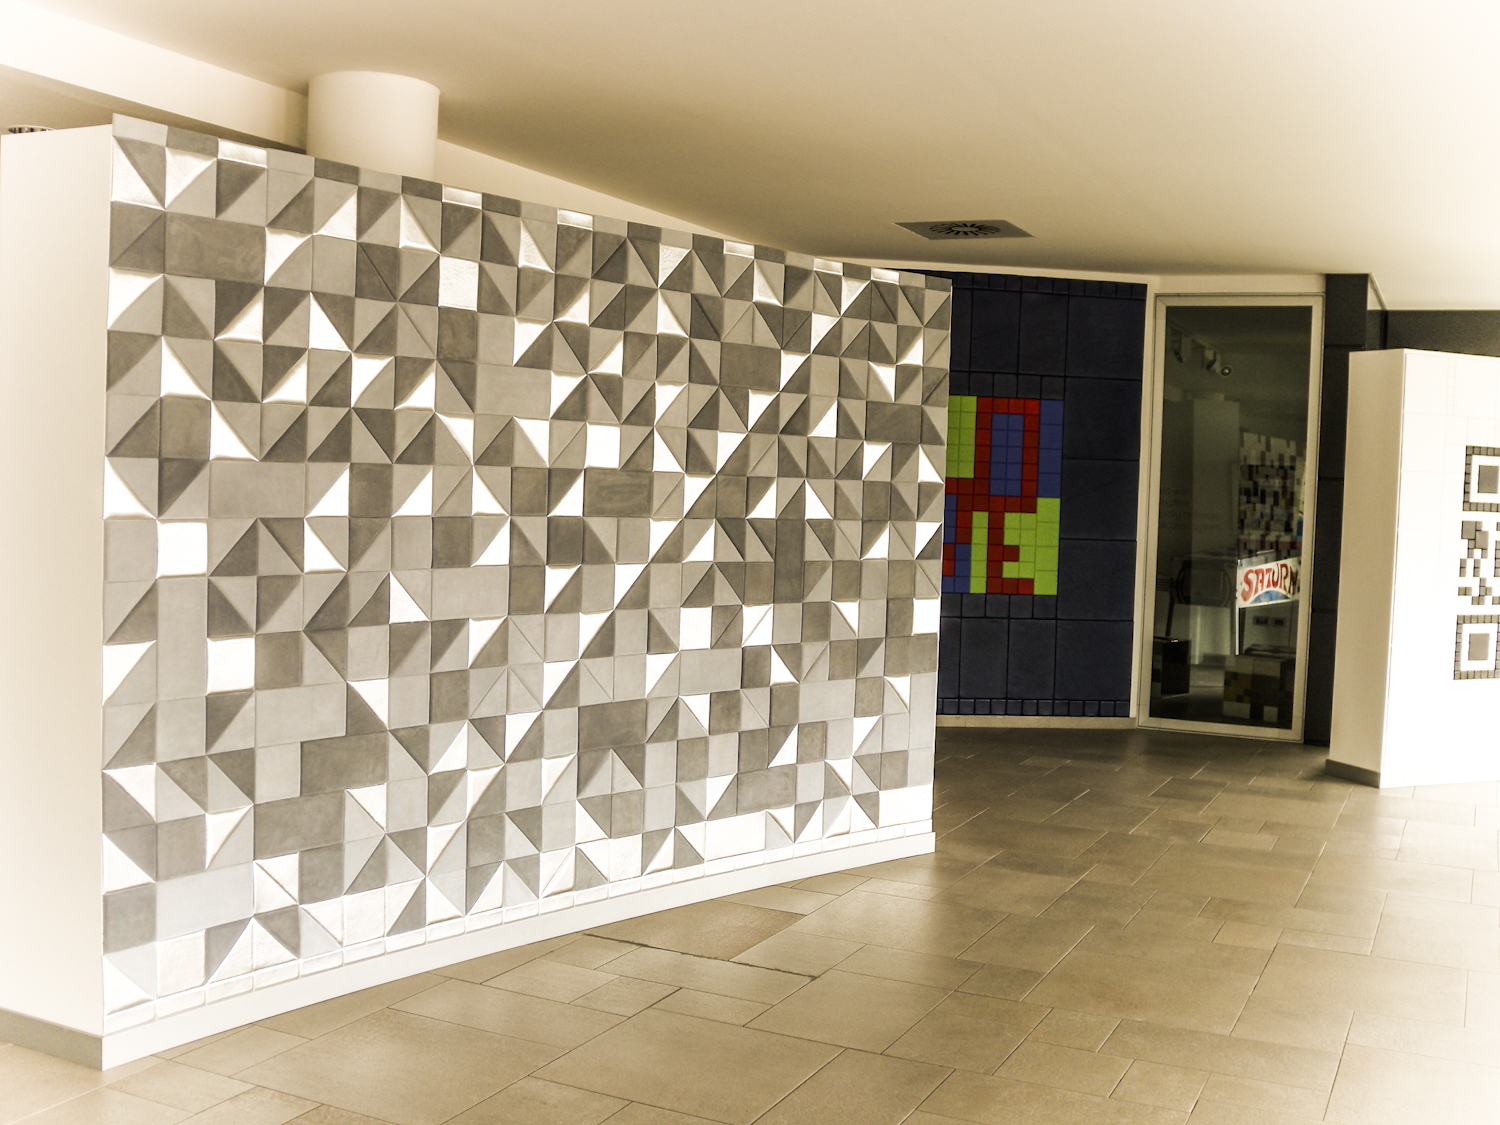 wall tiles design for hall photo   5. Wall Tiles Design for Hall   10 Creatively Different Ideas